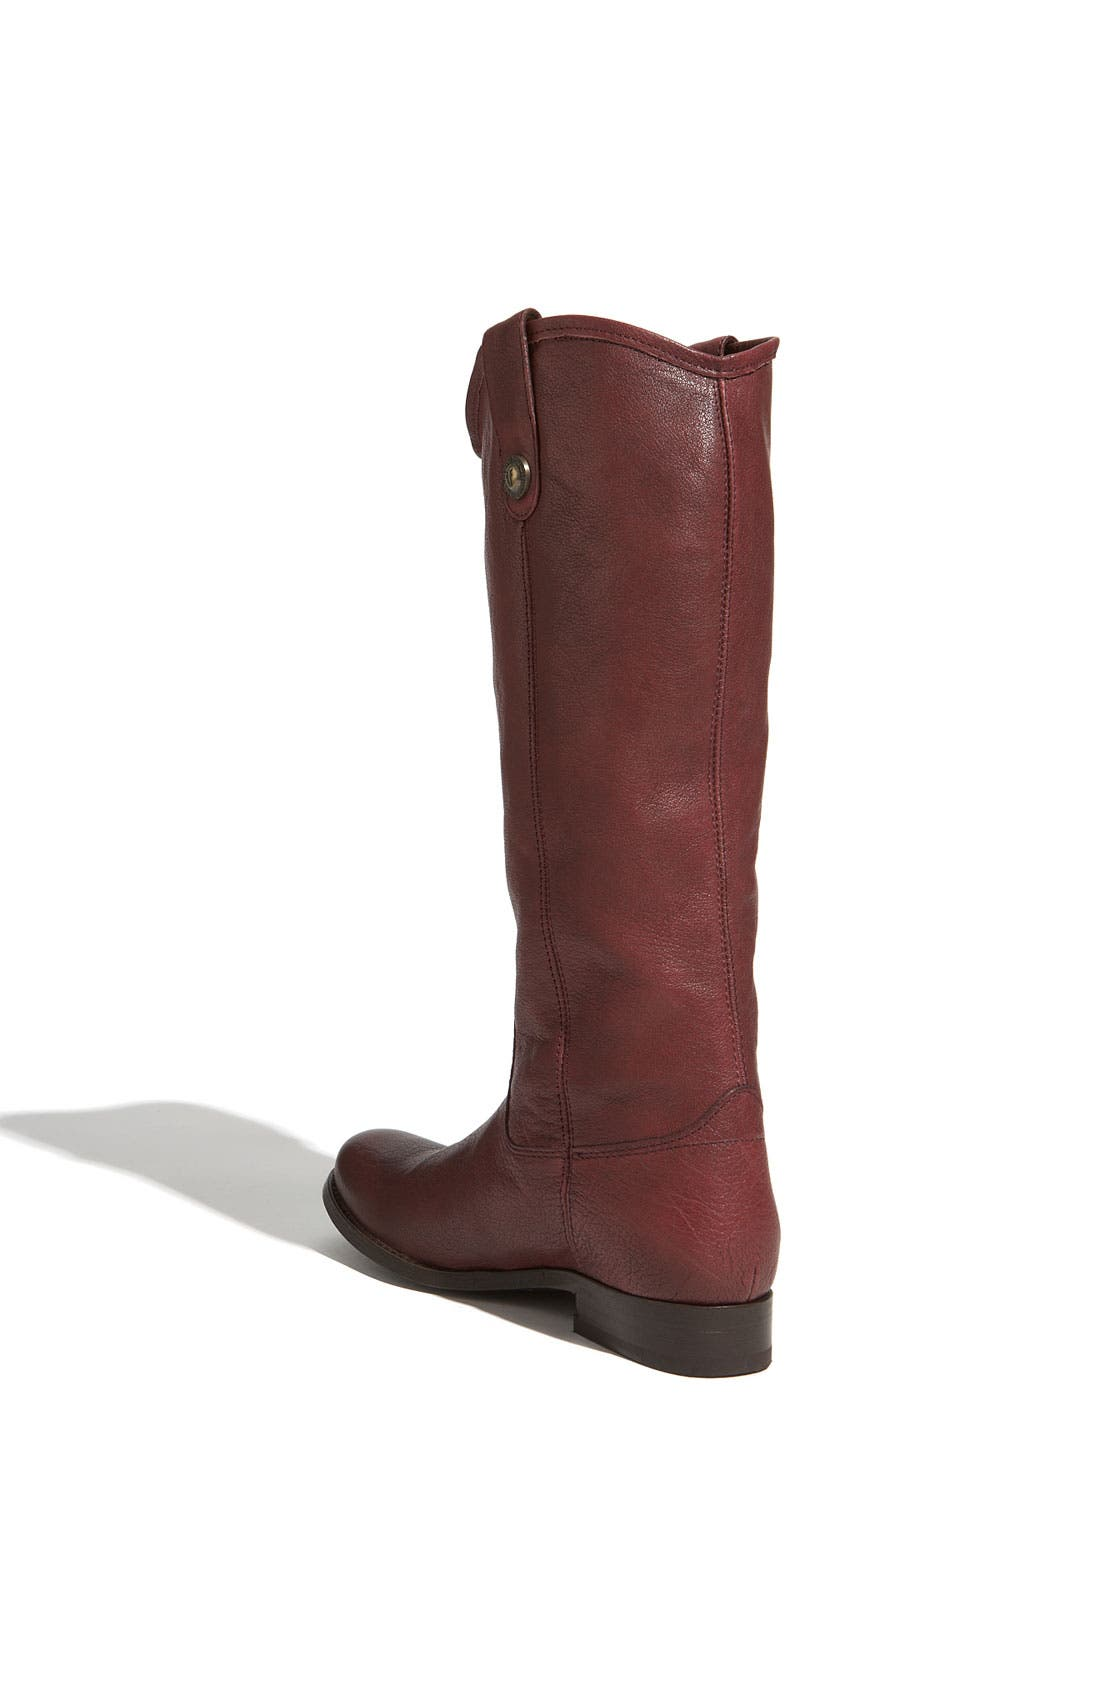 'Melissa Button' Leather Riding Boot,                             Alternate thumbnail 64, color,